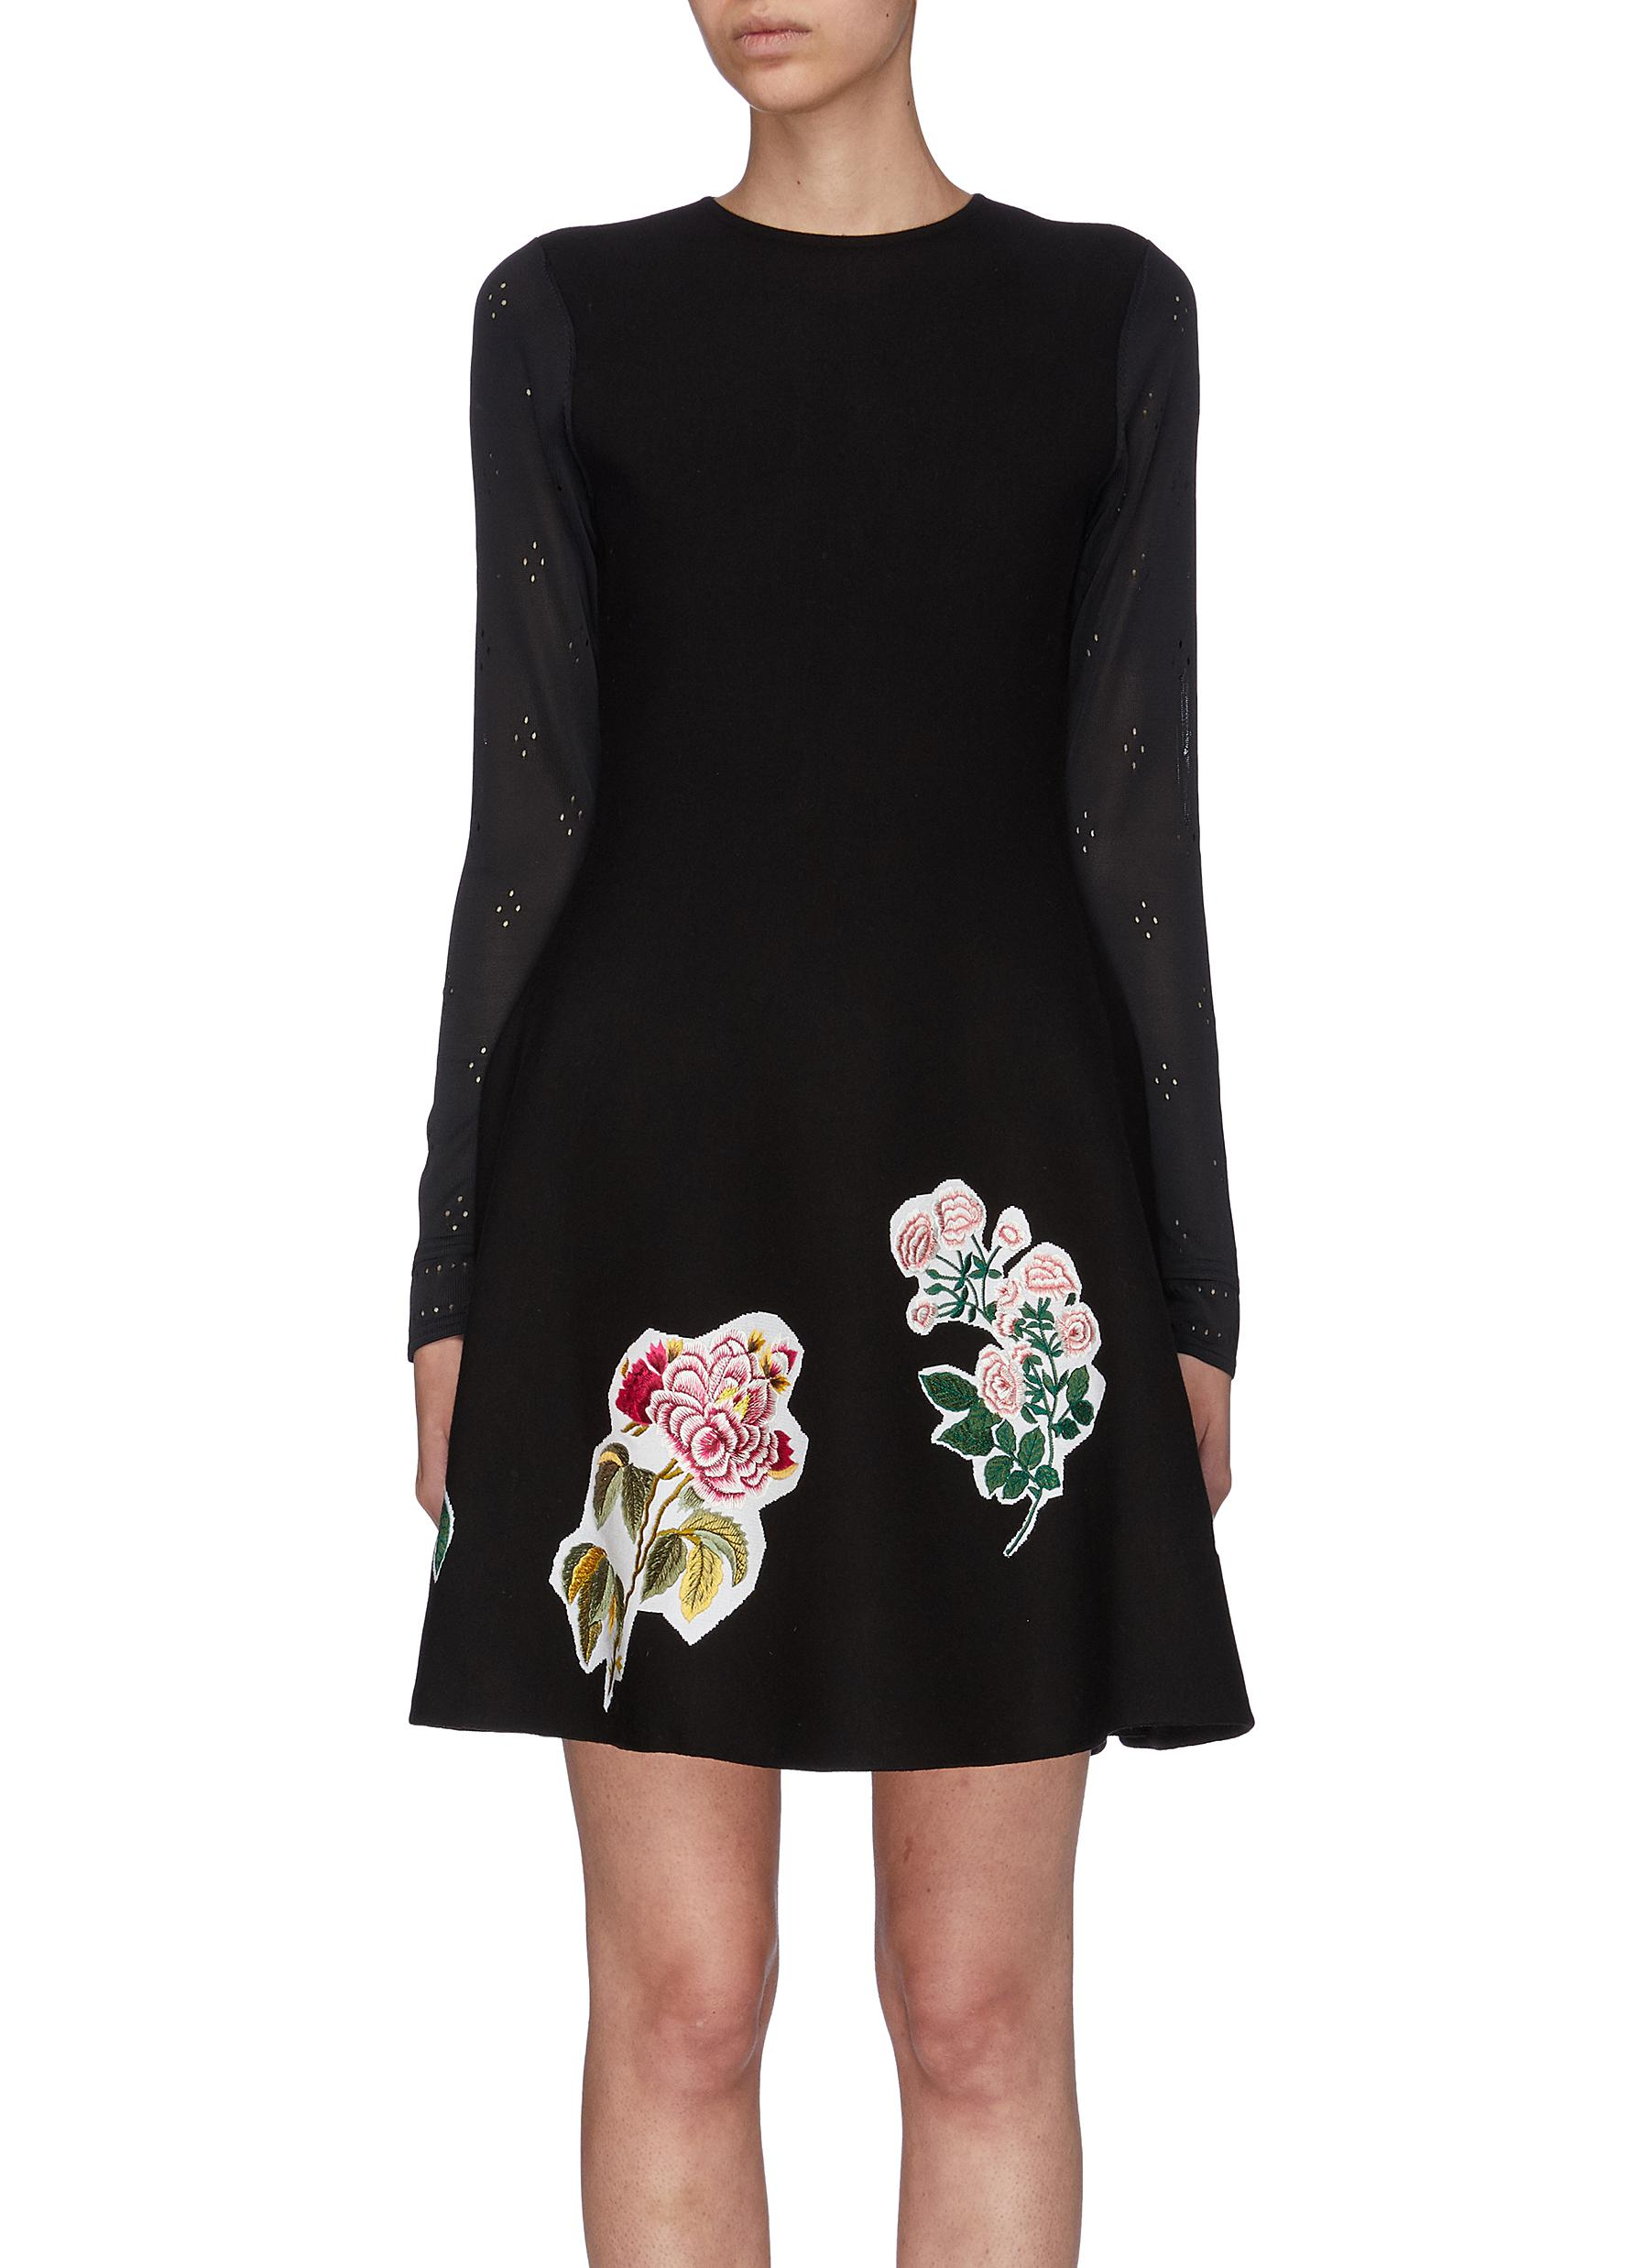 Broderie anglaise sleeve floral appliqué flared dress by Oscar De La Renta